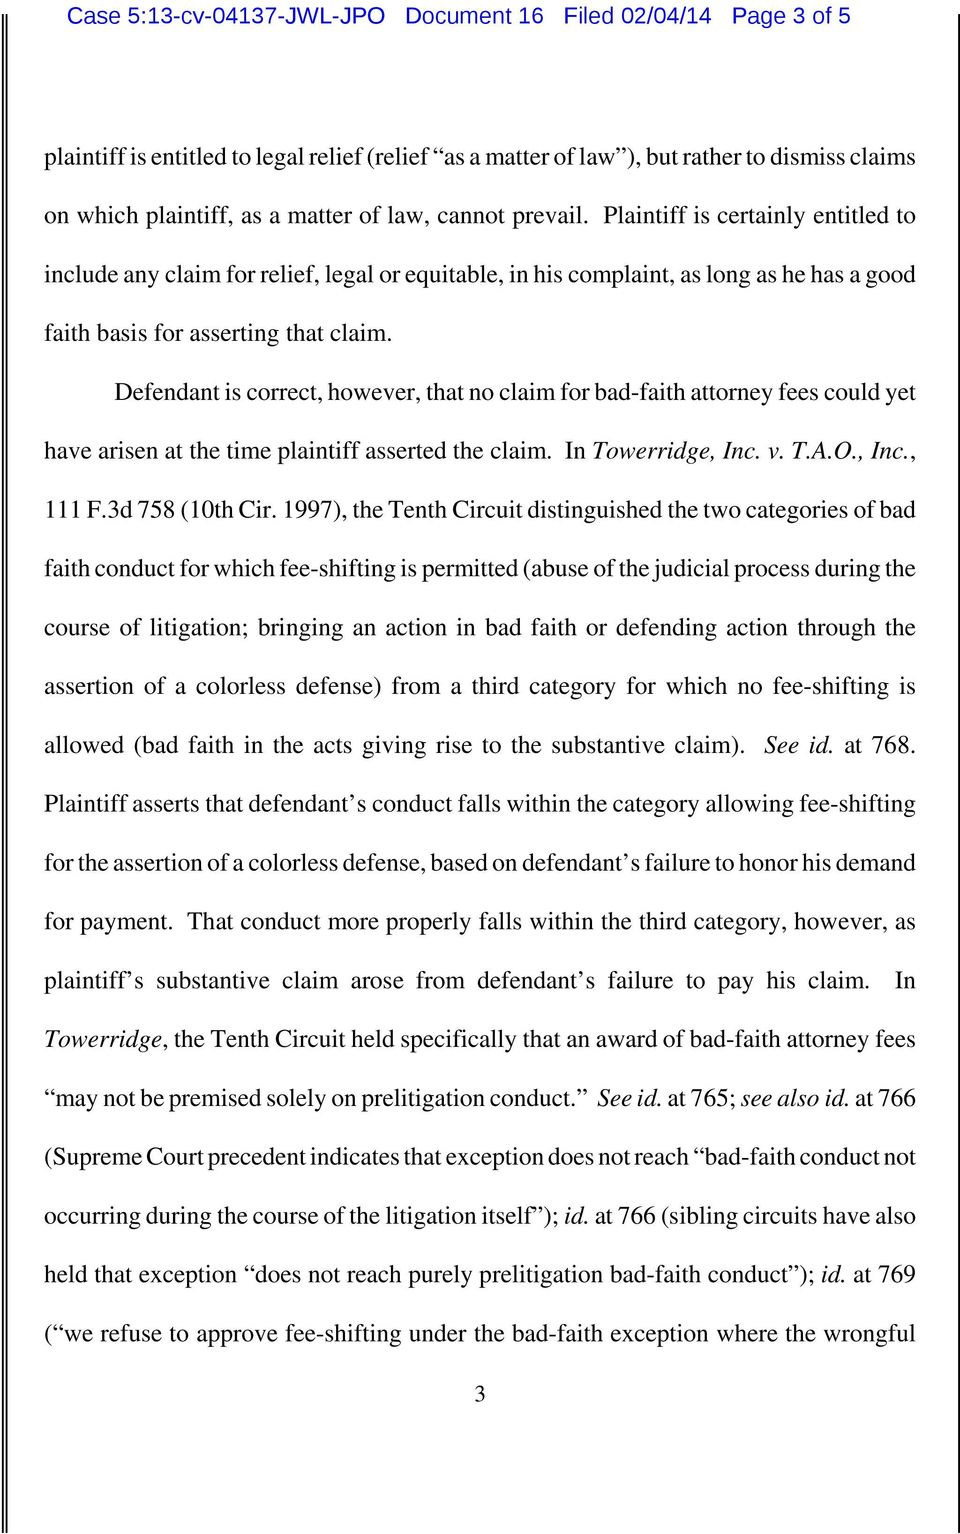 Defendant is correct, however, that no claim for bad-faith attorney fees could yet have arisen at the time plaintiff asserted the claim. In Towerridge, Inc. v. T.A.O., Inc., 111 F.3d 758 (10th Cir.